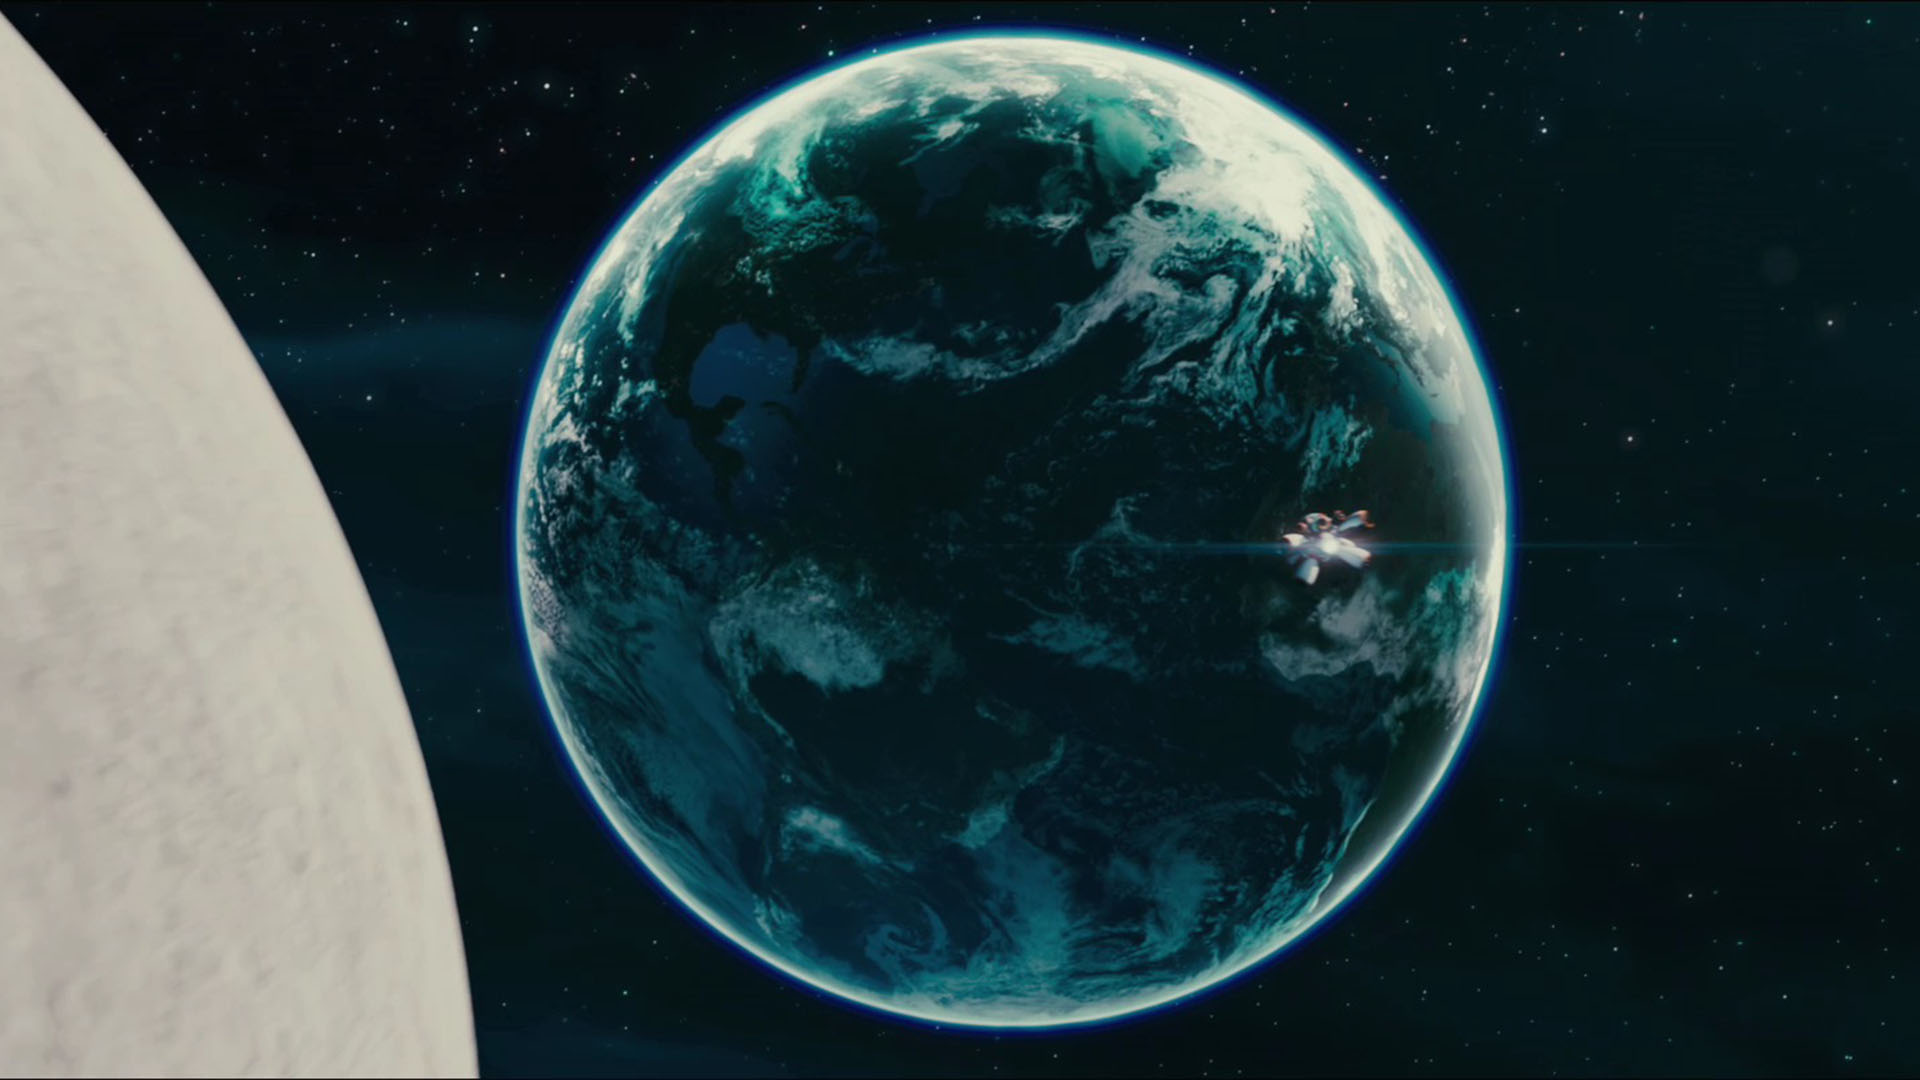 escape from planet earth scorch - photo #15